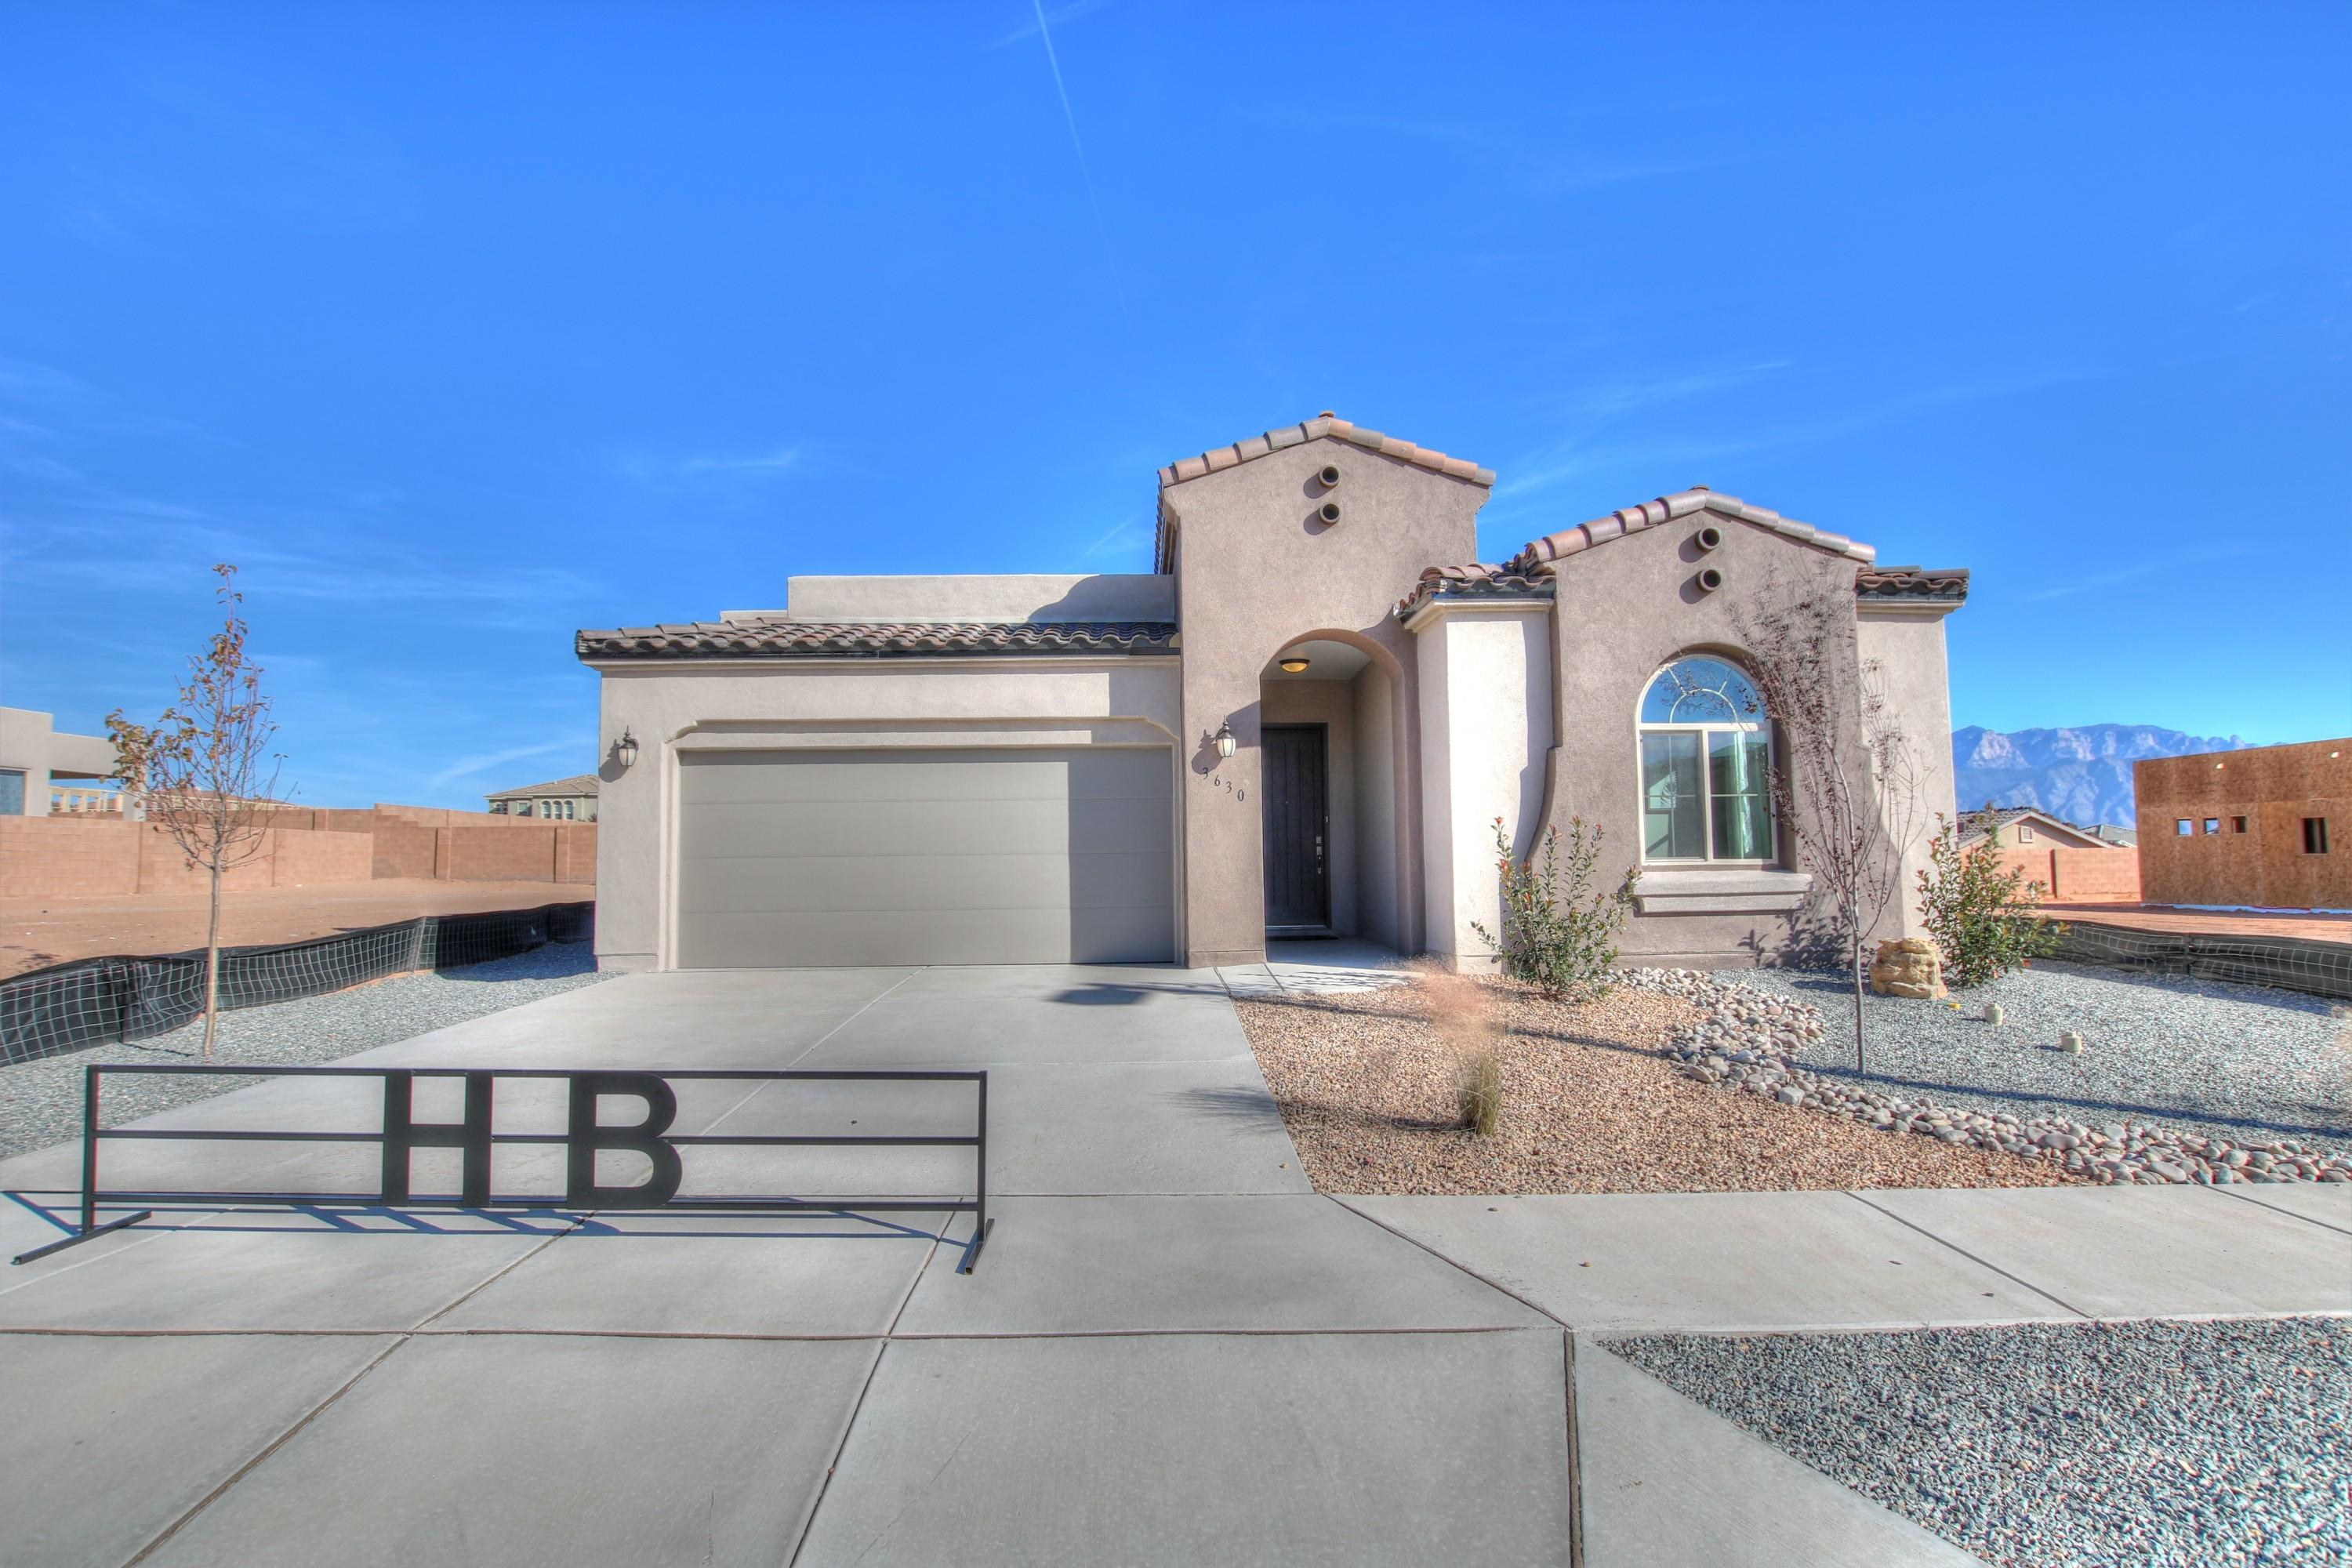 Estimated completion date:  09/25/20202119 MedittereneanBlock 5, lot 4 2C Phase 3Home has 36'' Fireplace with tiled finish, Pendant lighting over kitchen island, 12'' under cabinet lighting, Upgraded ceiling fan in Great Room,  Barn door, Pot Filler, Rain shower head in master shower, 8' doors throughout home, dual body sprayers in Master shower, Gourmet Kitchen with farm sink, Upgraded Kitchen Granite, Upgraded kitchen backsplash.NOTE: PHOTOS ARE NOT ACTUAL OF HOME BUT REPRESENT FLOOR PLAN